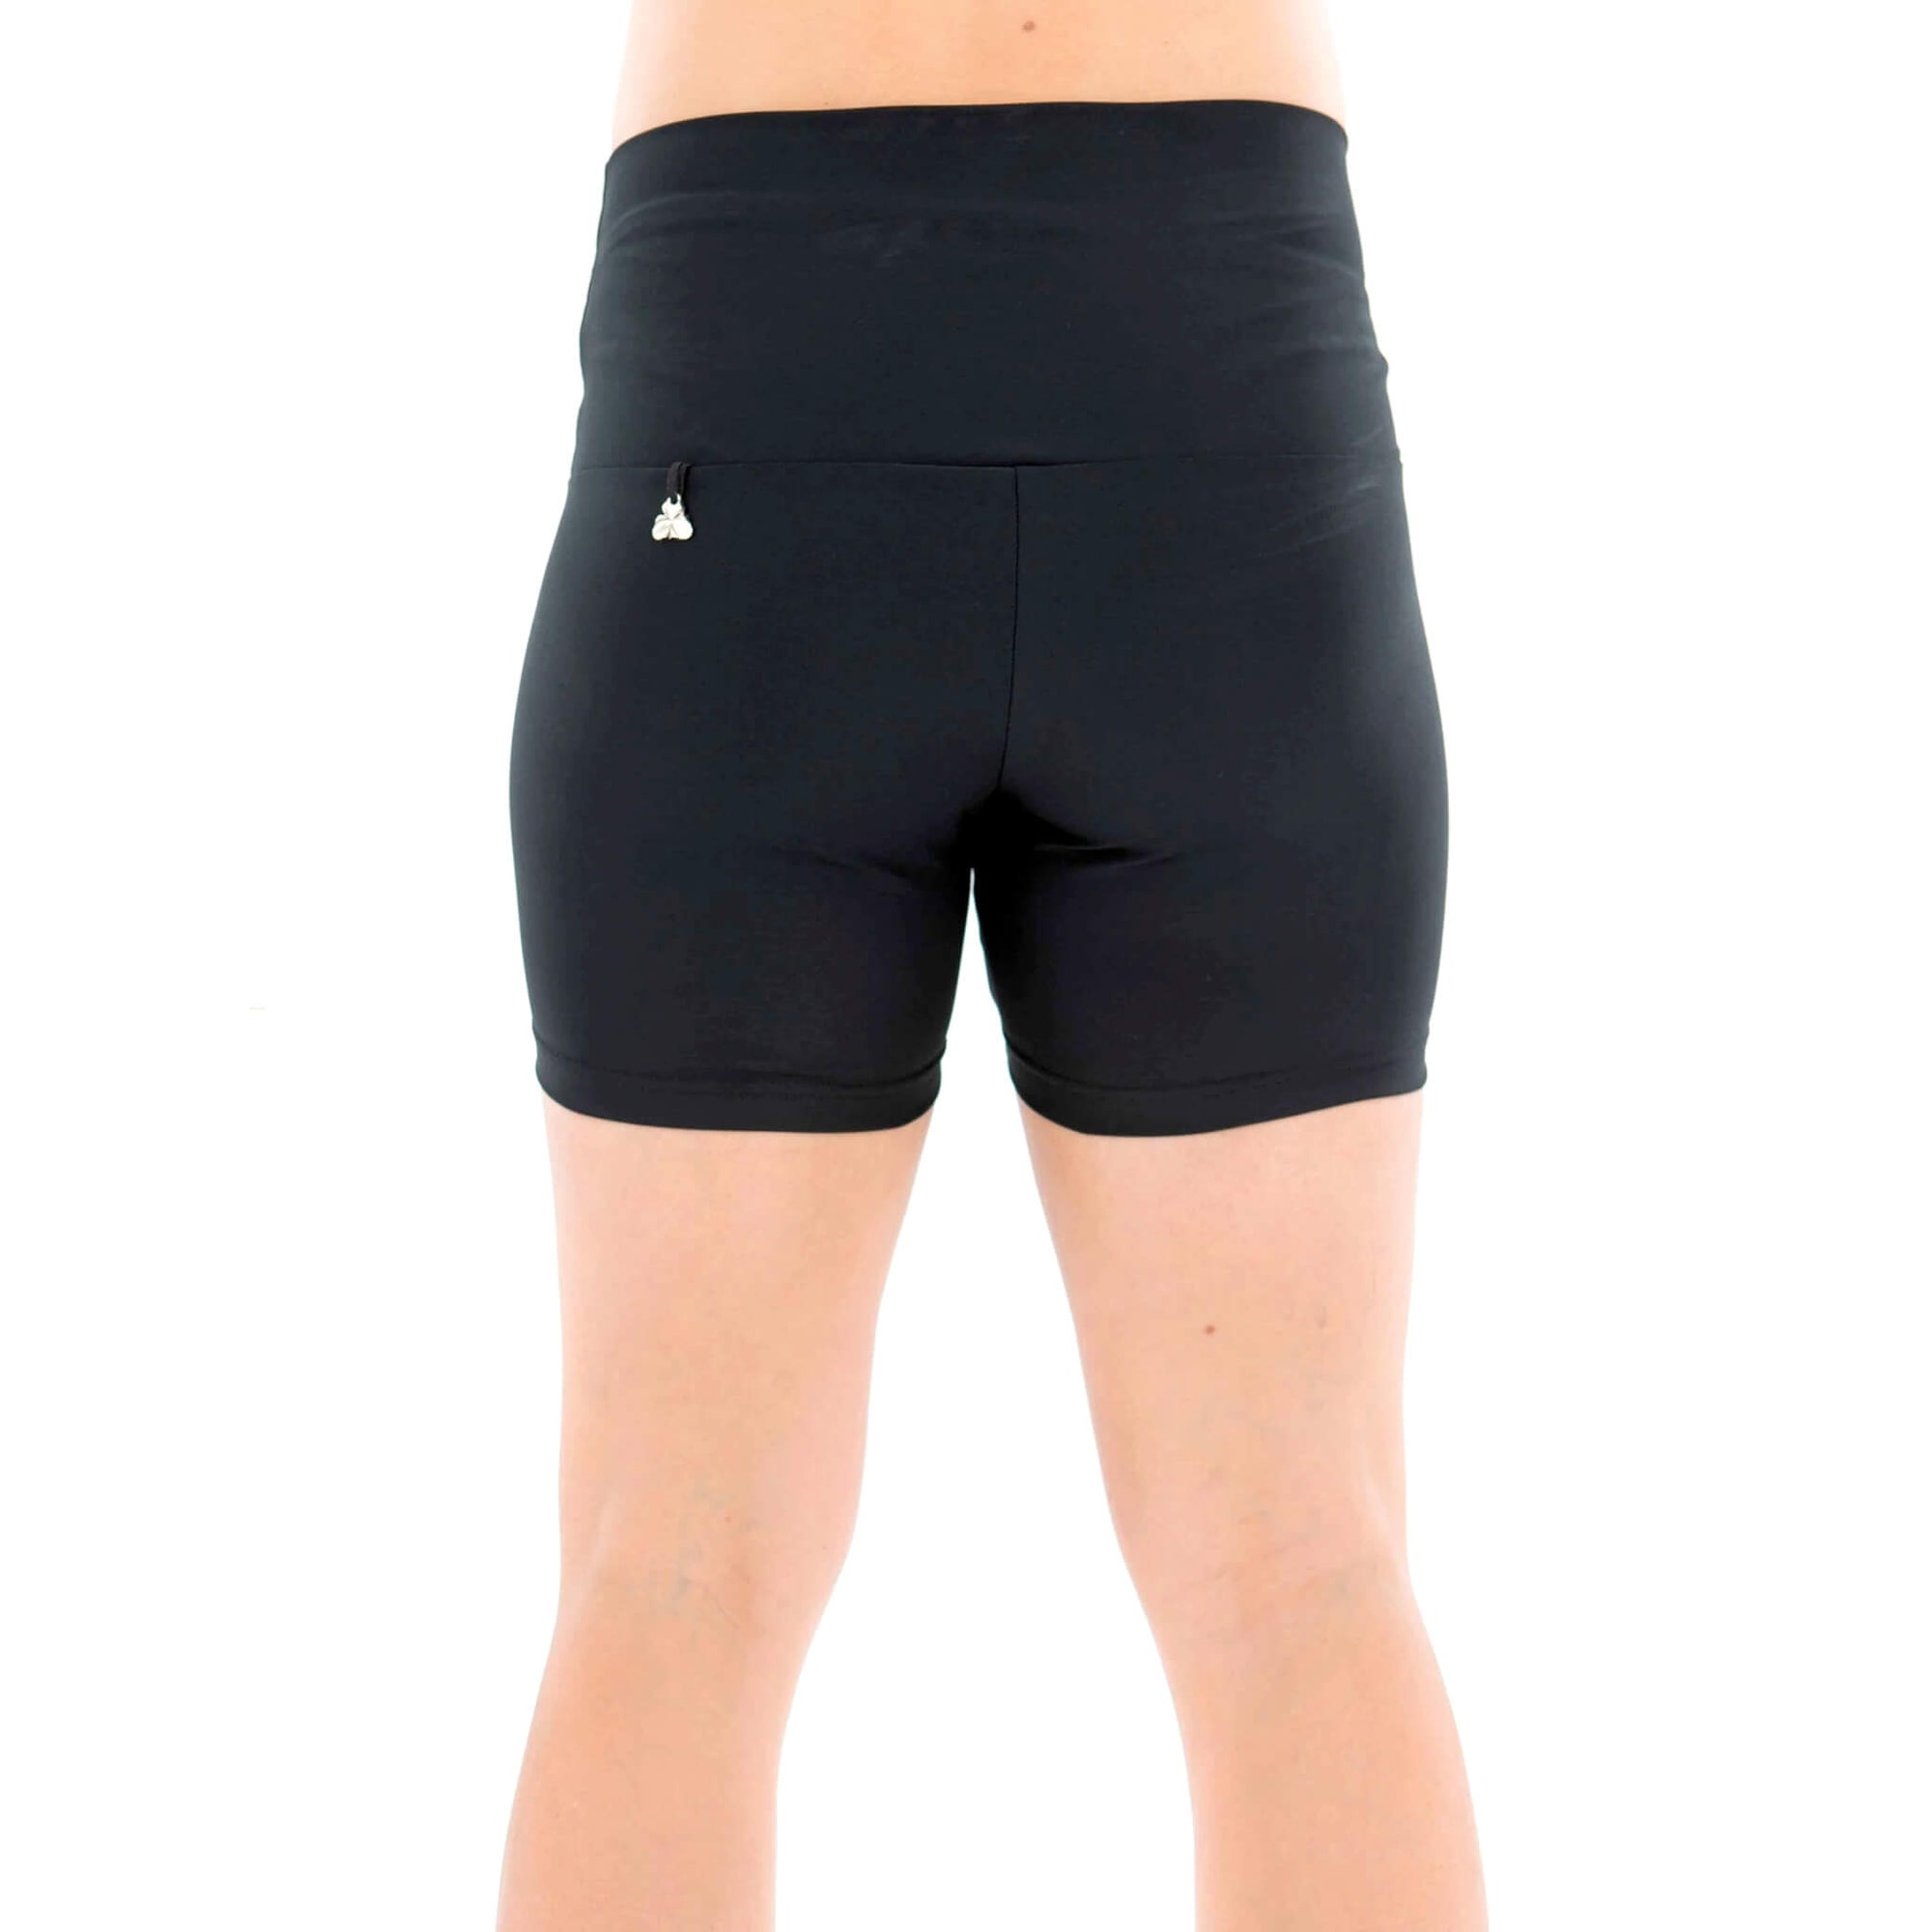 Legging Vilaine Short-KSL